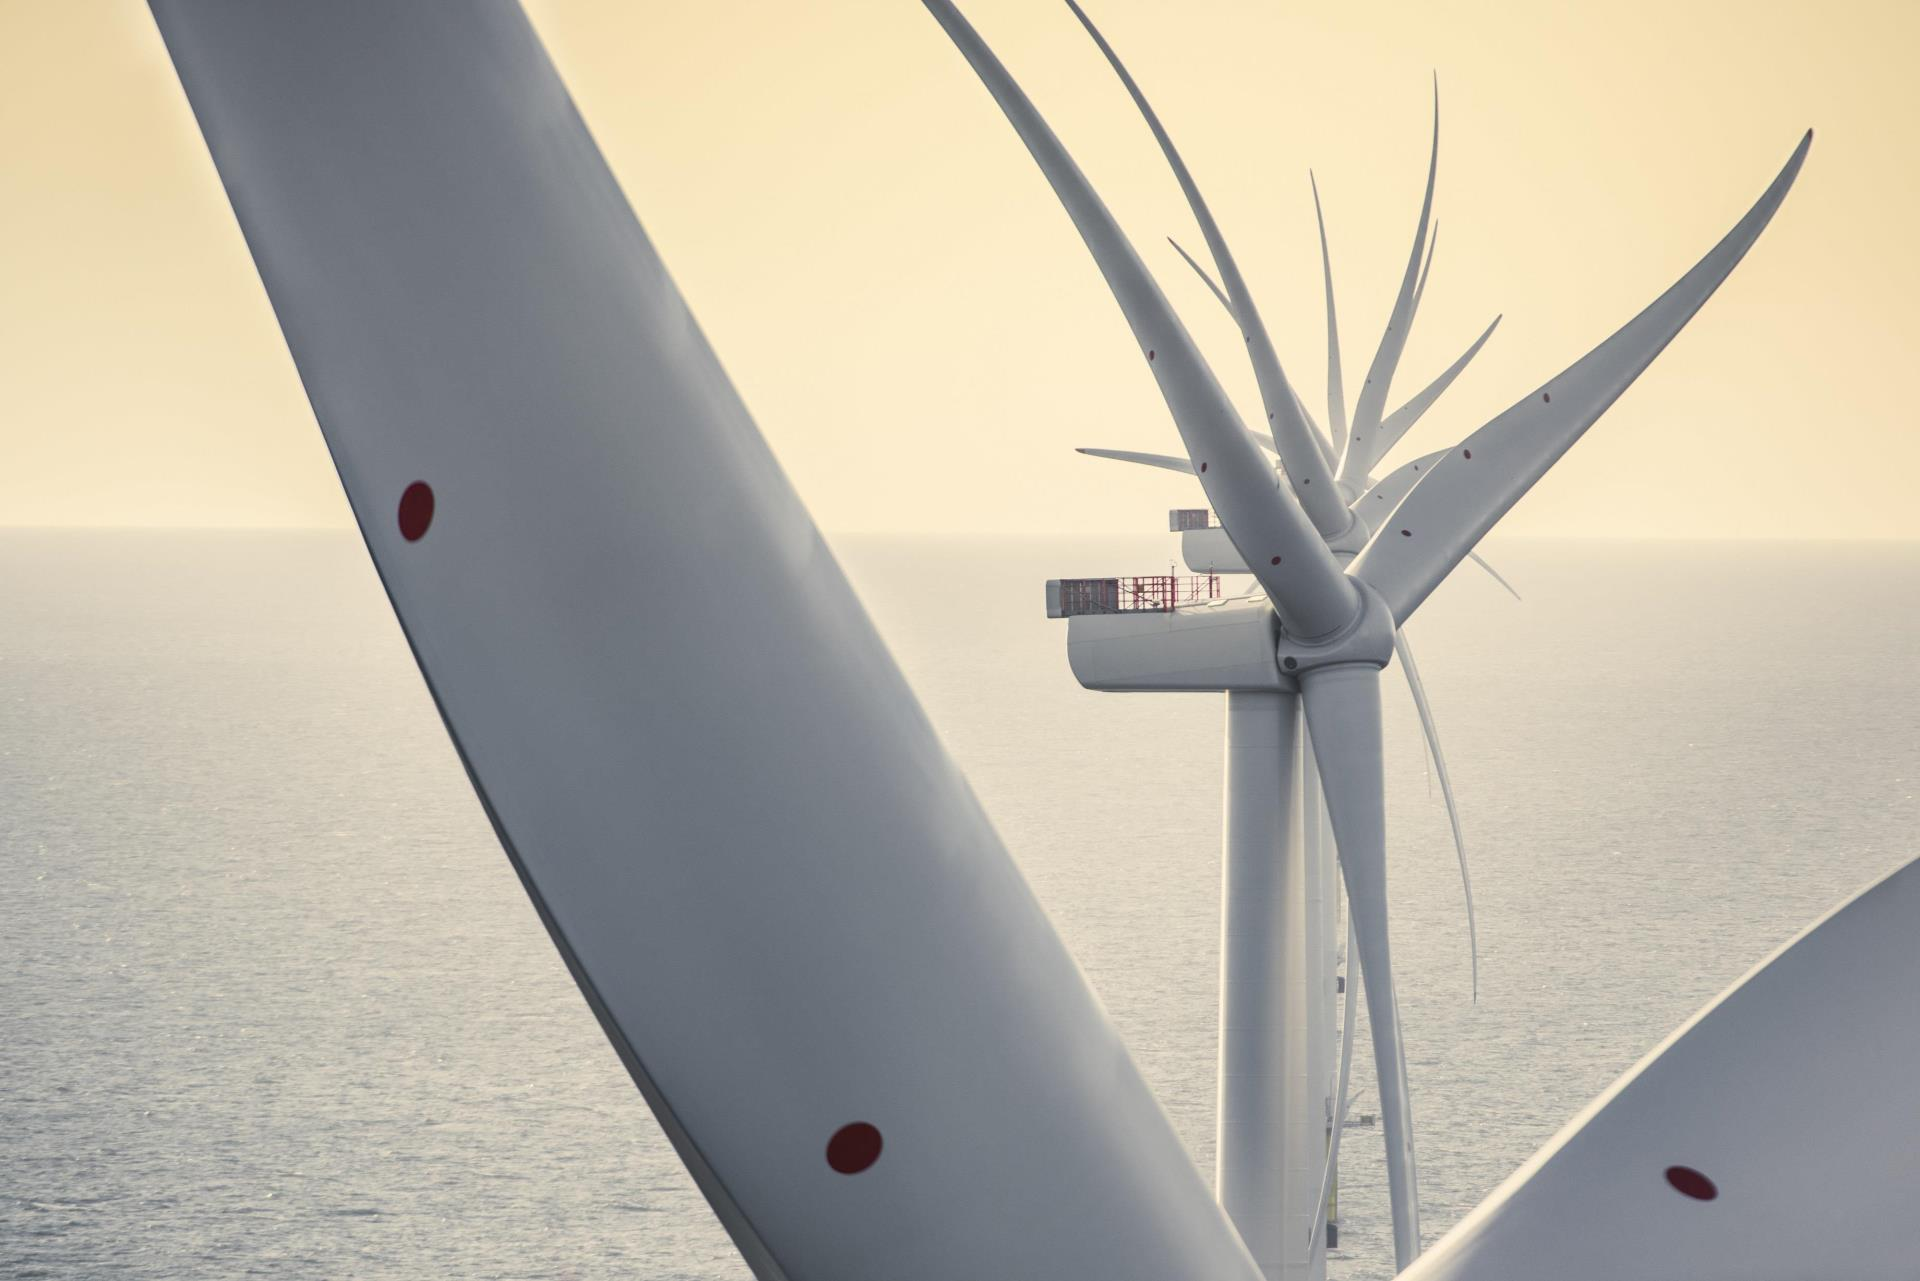 New coalition, headed up by Vestas, to commercialise solution for full recyclability of wind turbine blades